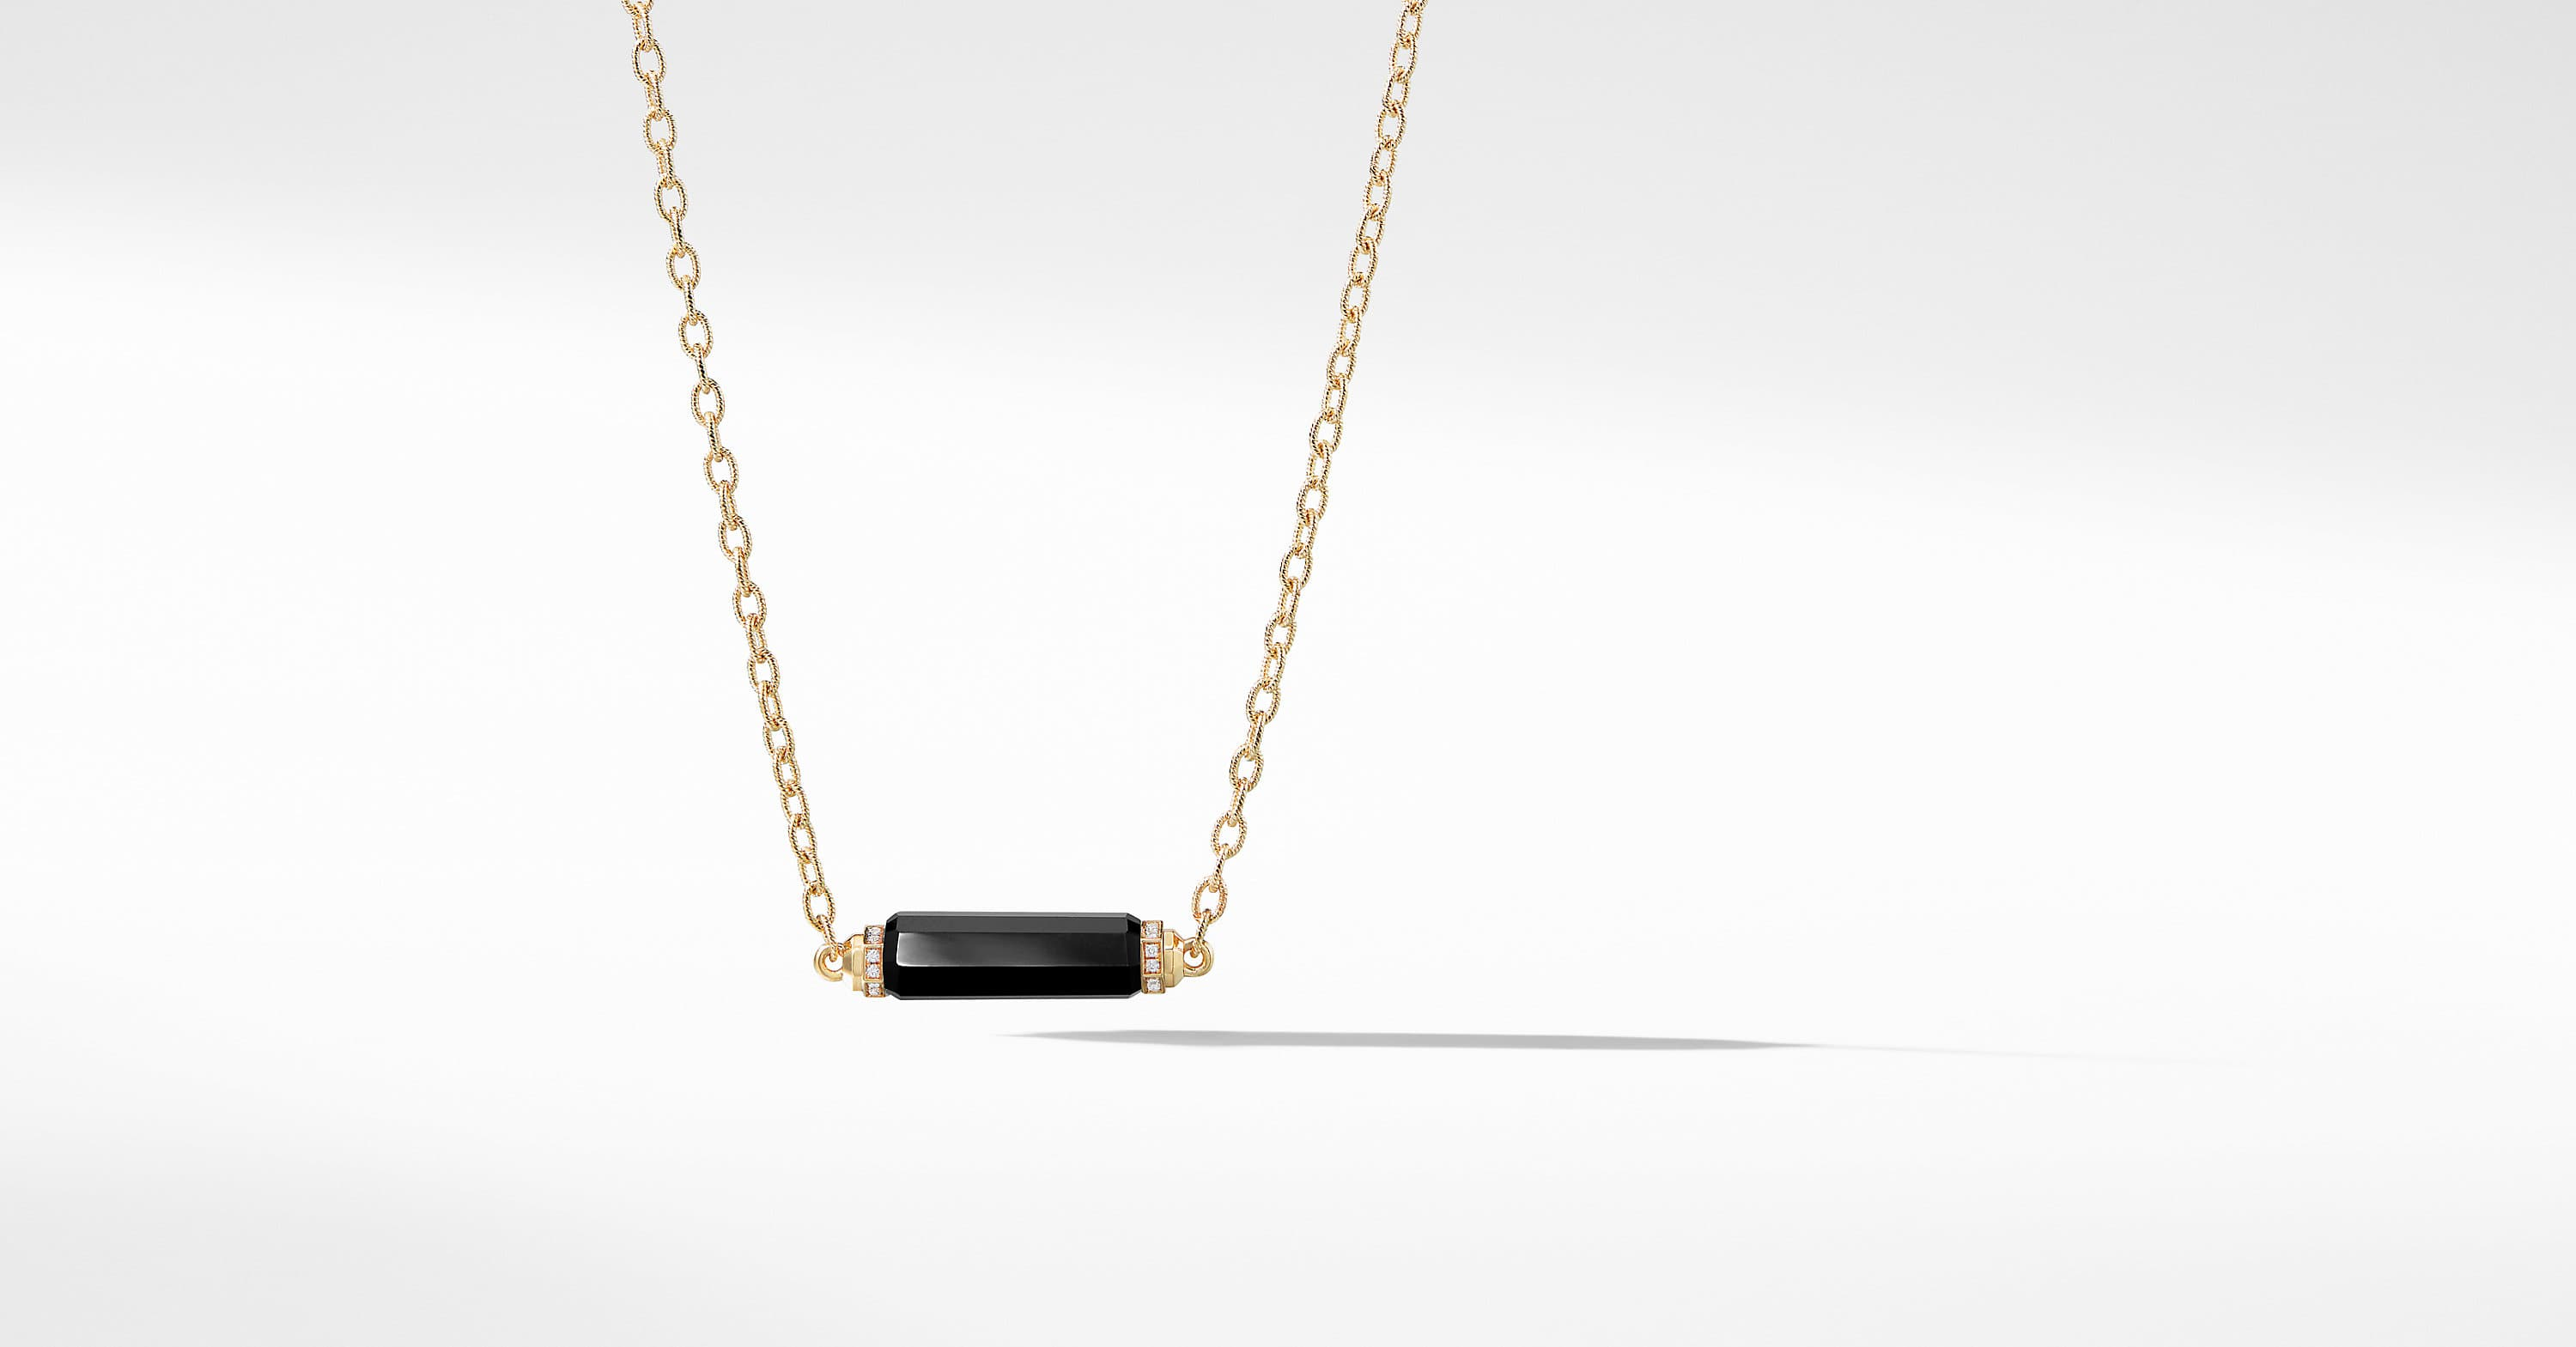 Barrels Single Station Necklace with Diamonds in 18K Gold